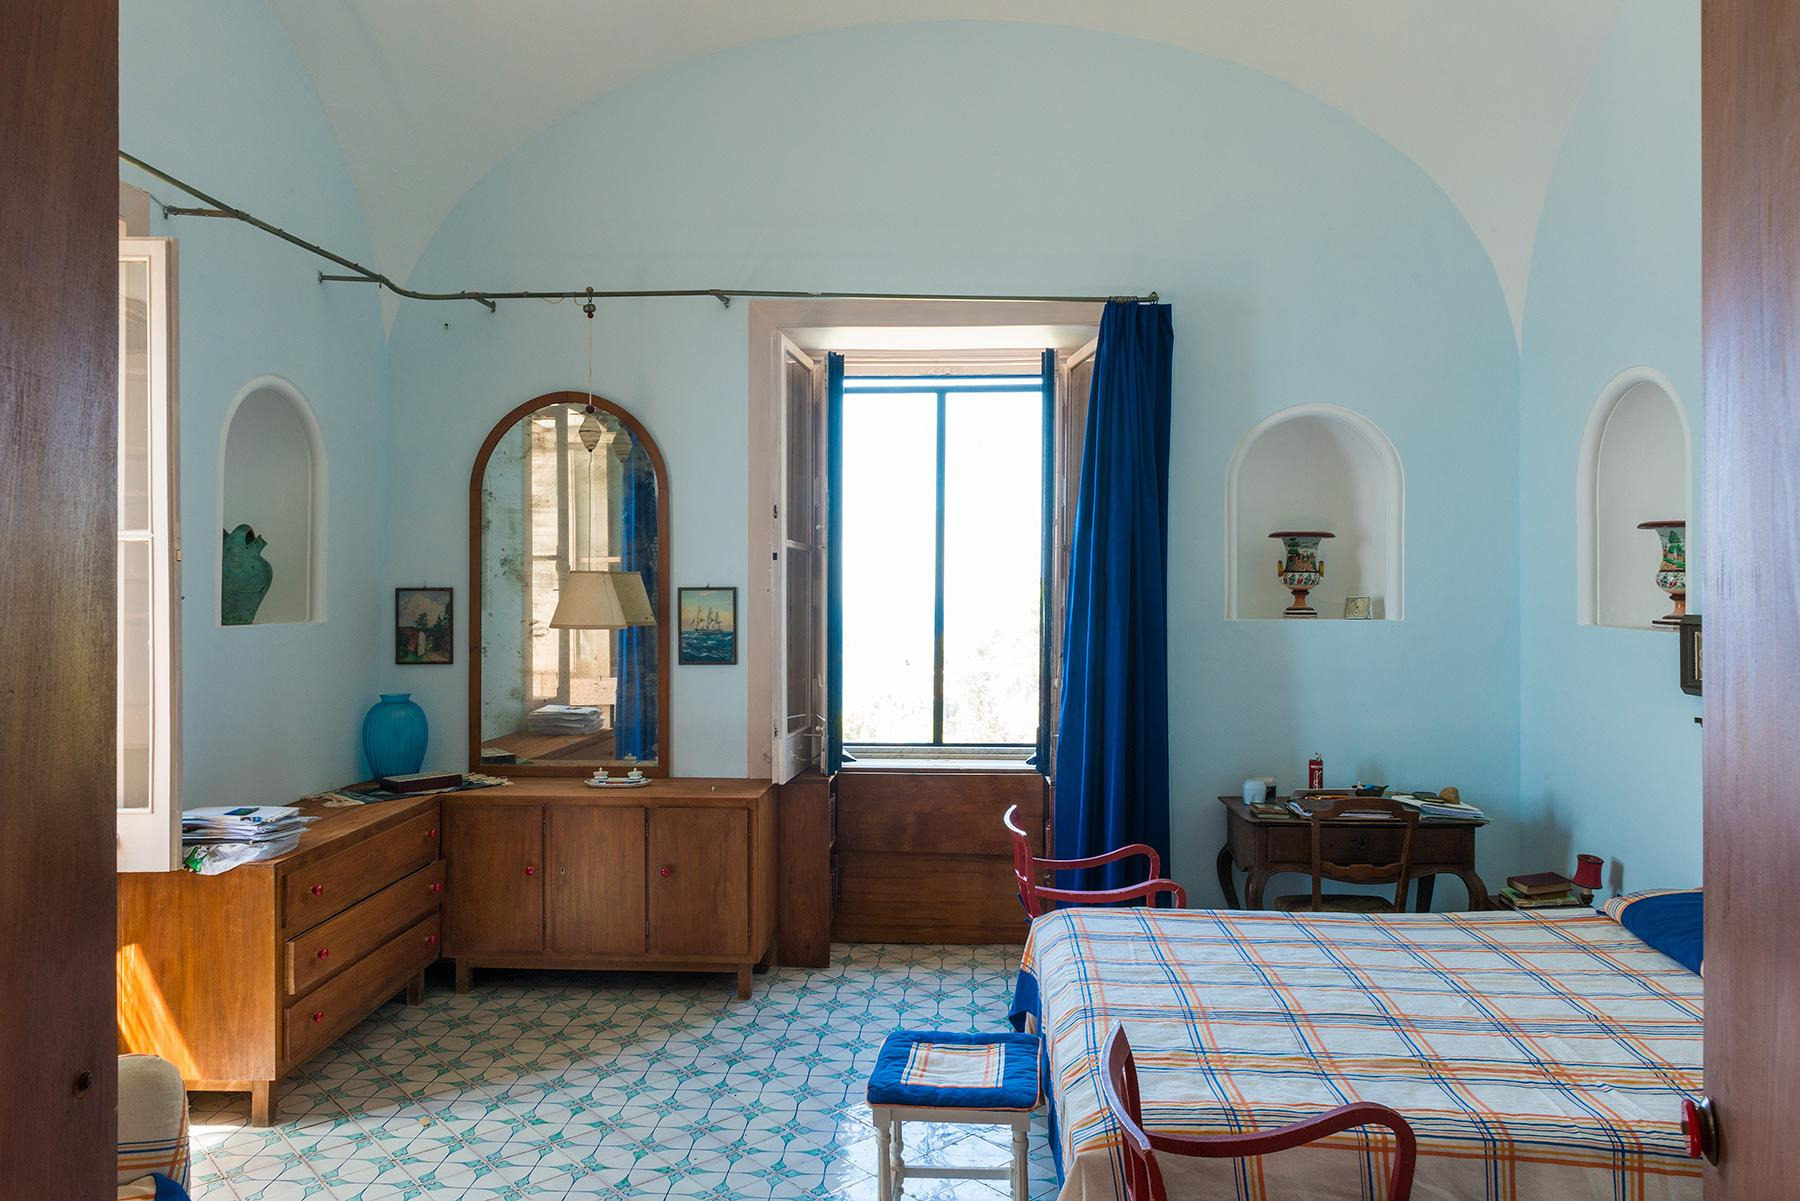 Remarkable villa with a breathtaking panorama on the Faraglioni rocks - 27